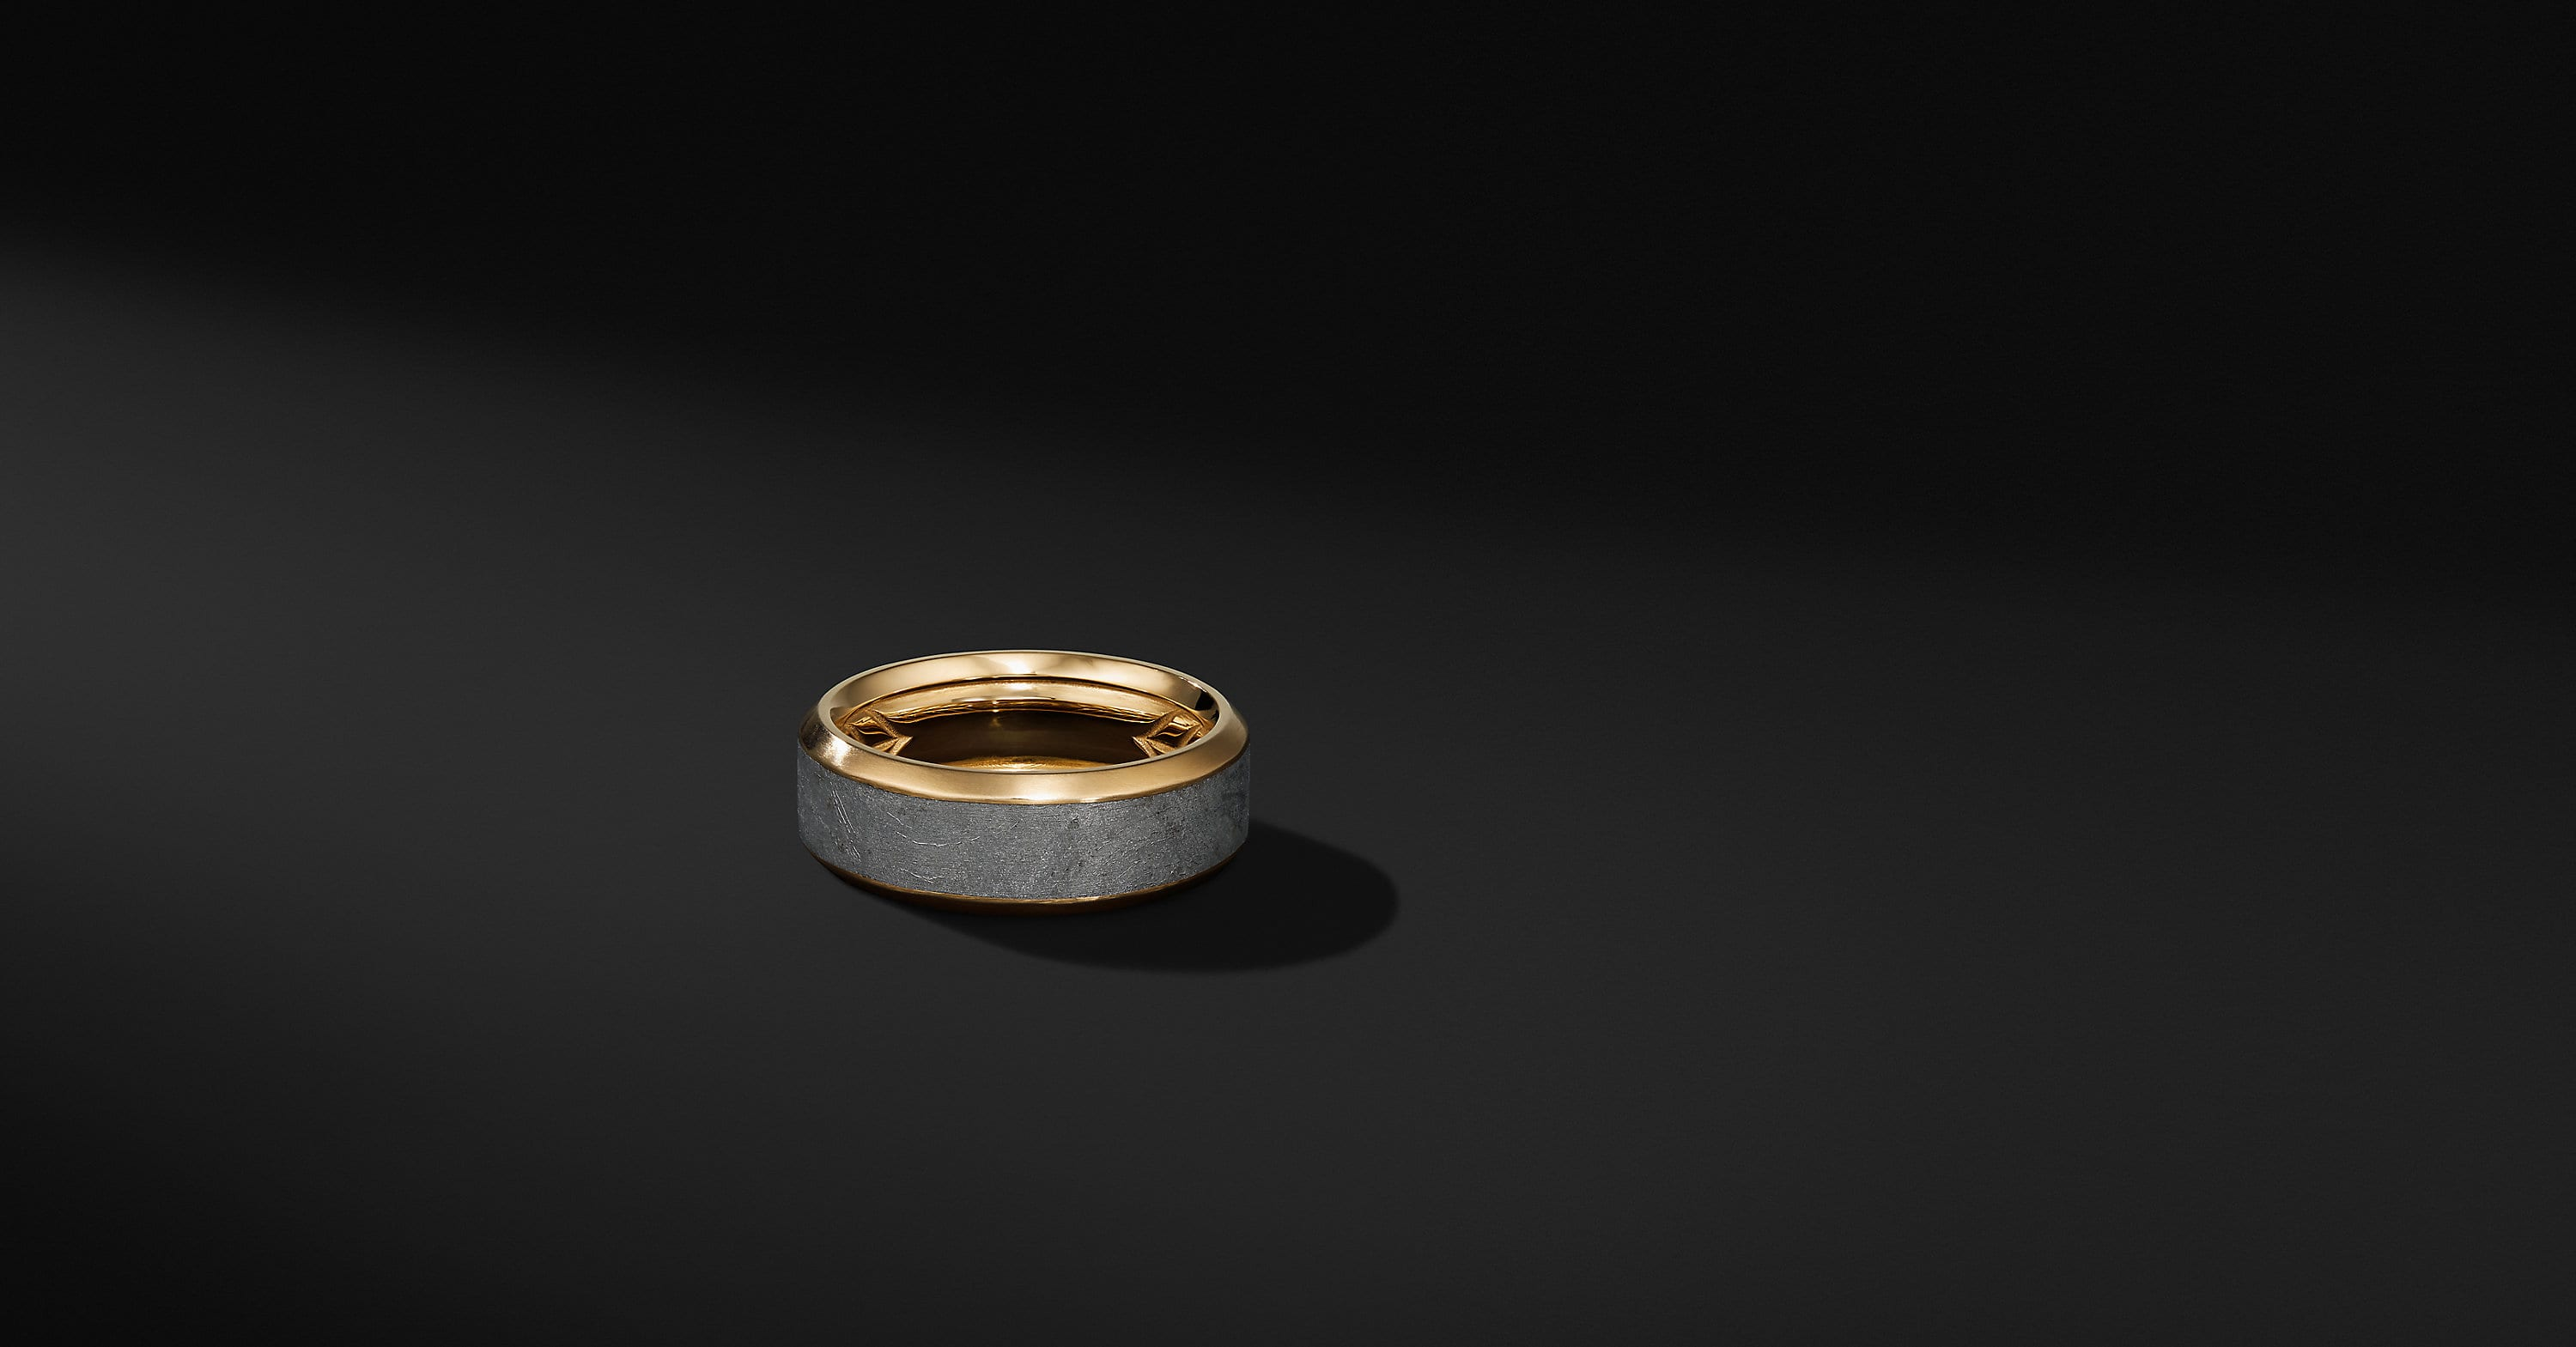 Beveled Meteorite Band Ring with 18K Yellow Gold, 8mm